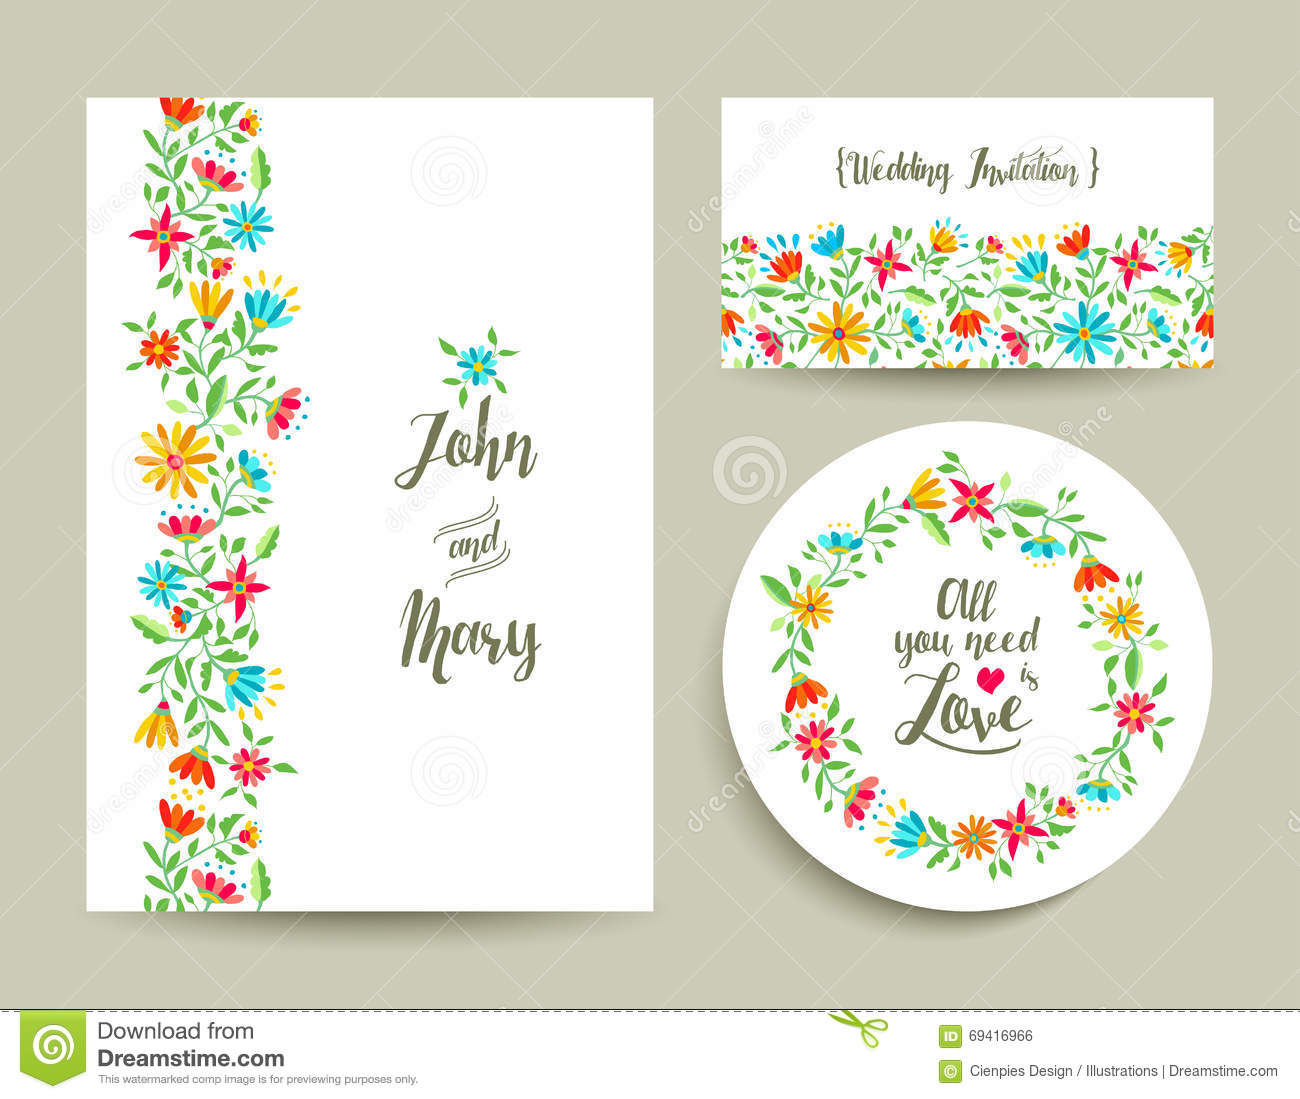 Flower Wedding Card Invitation With Nature Design Stock Vector